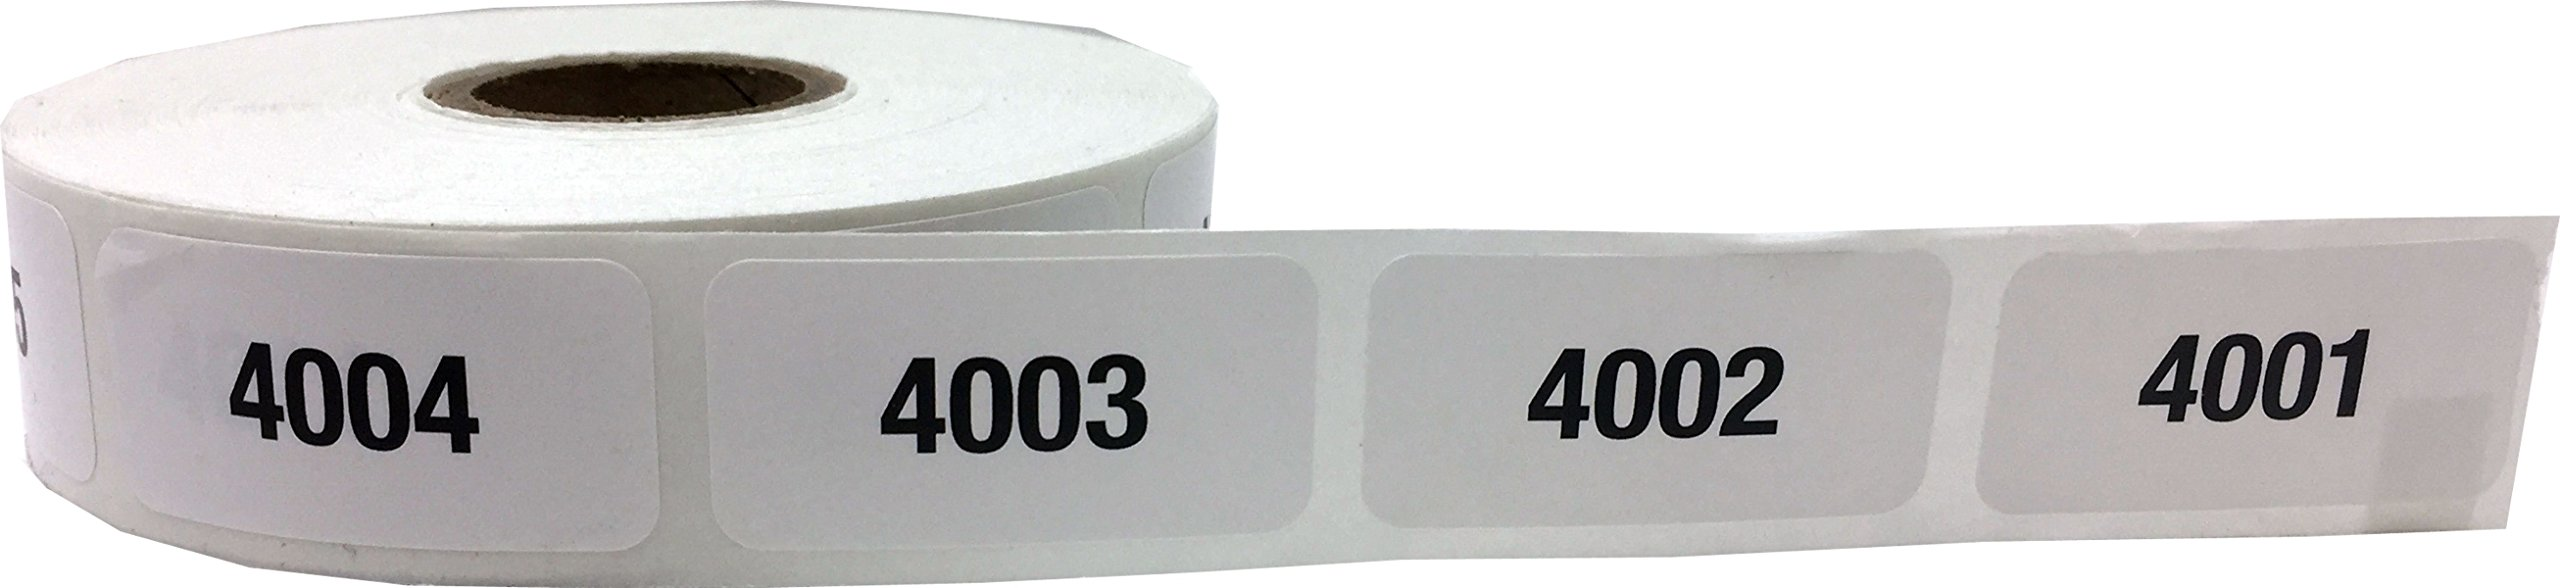 Consecutive Number Labels Bulk Pack Numbers 1 Through 10,000 White/Black .75 x 1.5 Rectangle Small Number Stickers For Inventory by InStockLabels.com (Image #7)